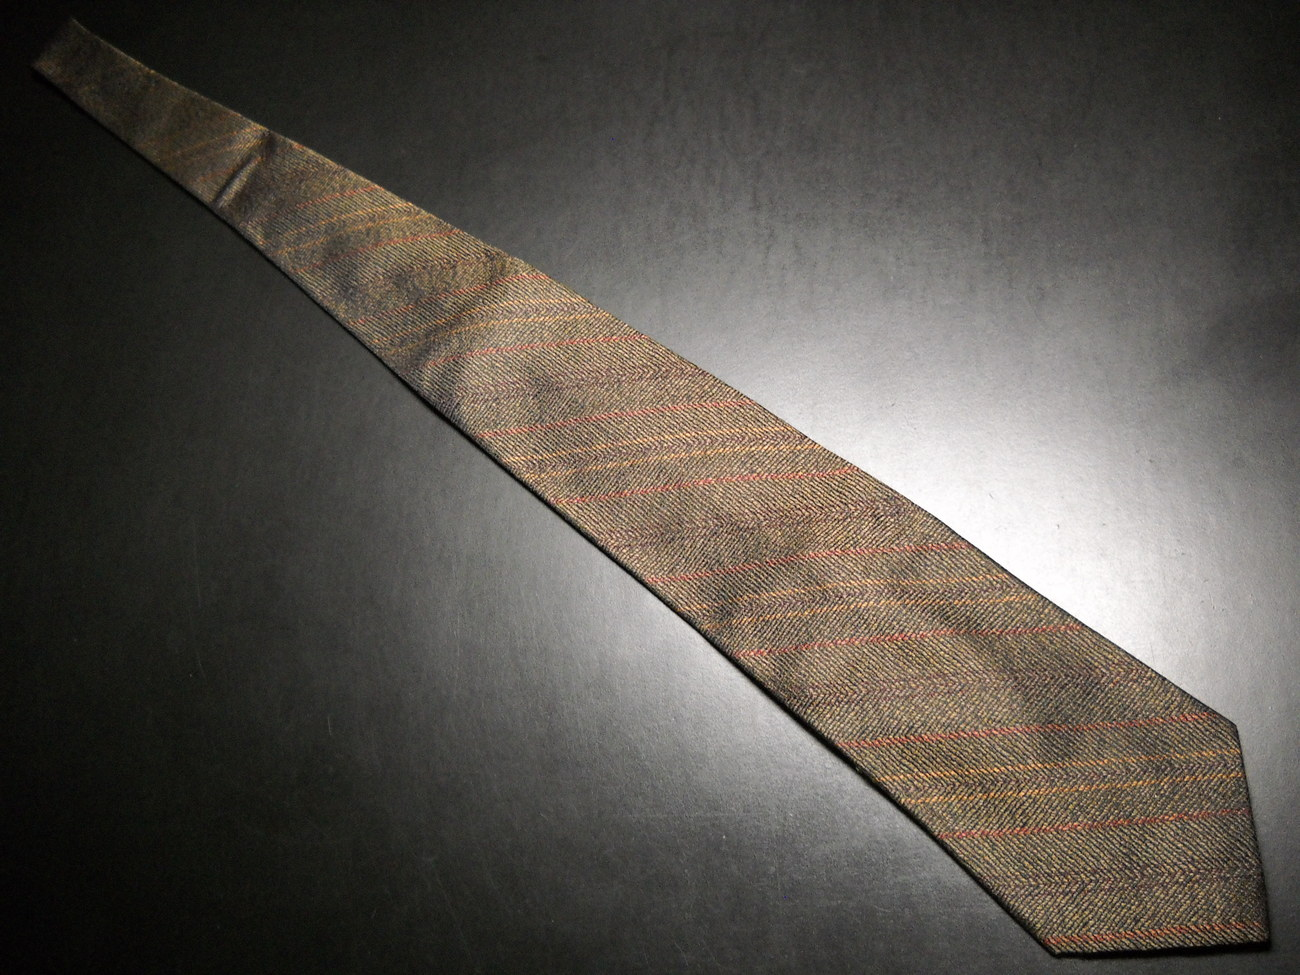 Hart Schaffner Marx Neck Tie Silk Woven in Italy Tie Made in USA Browns Gold